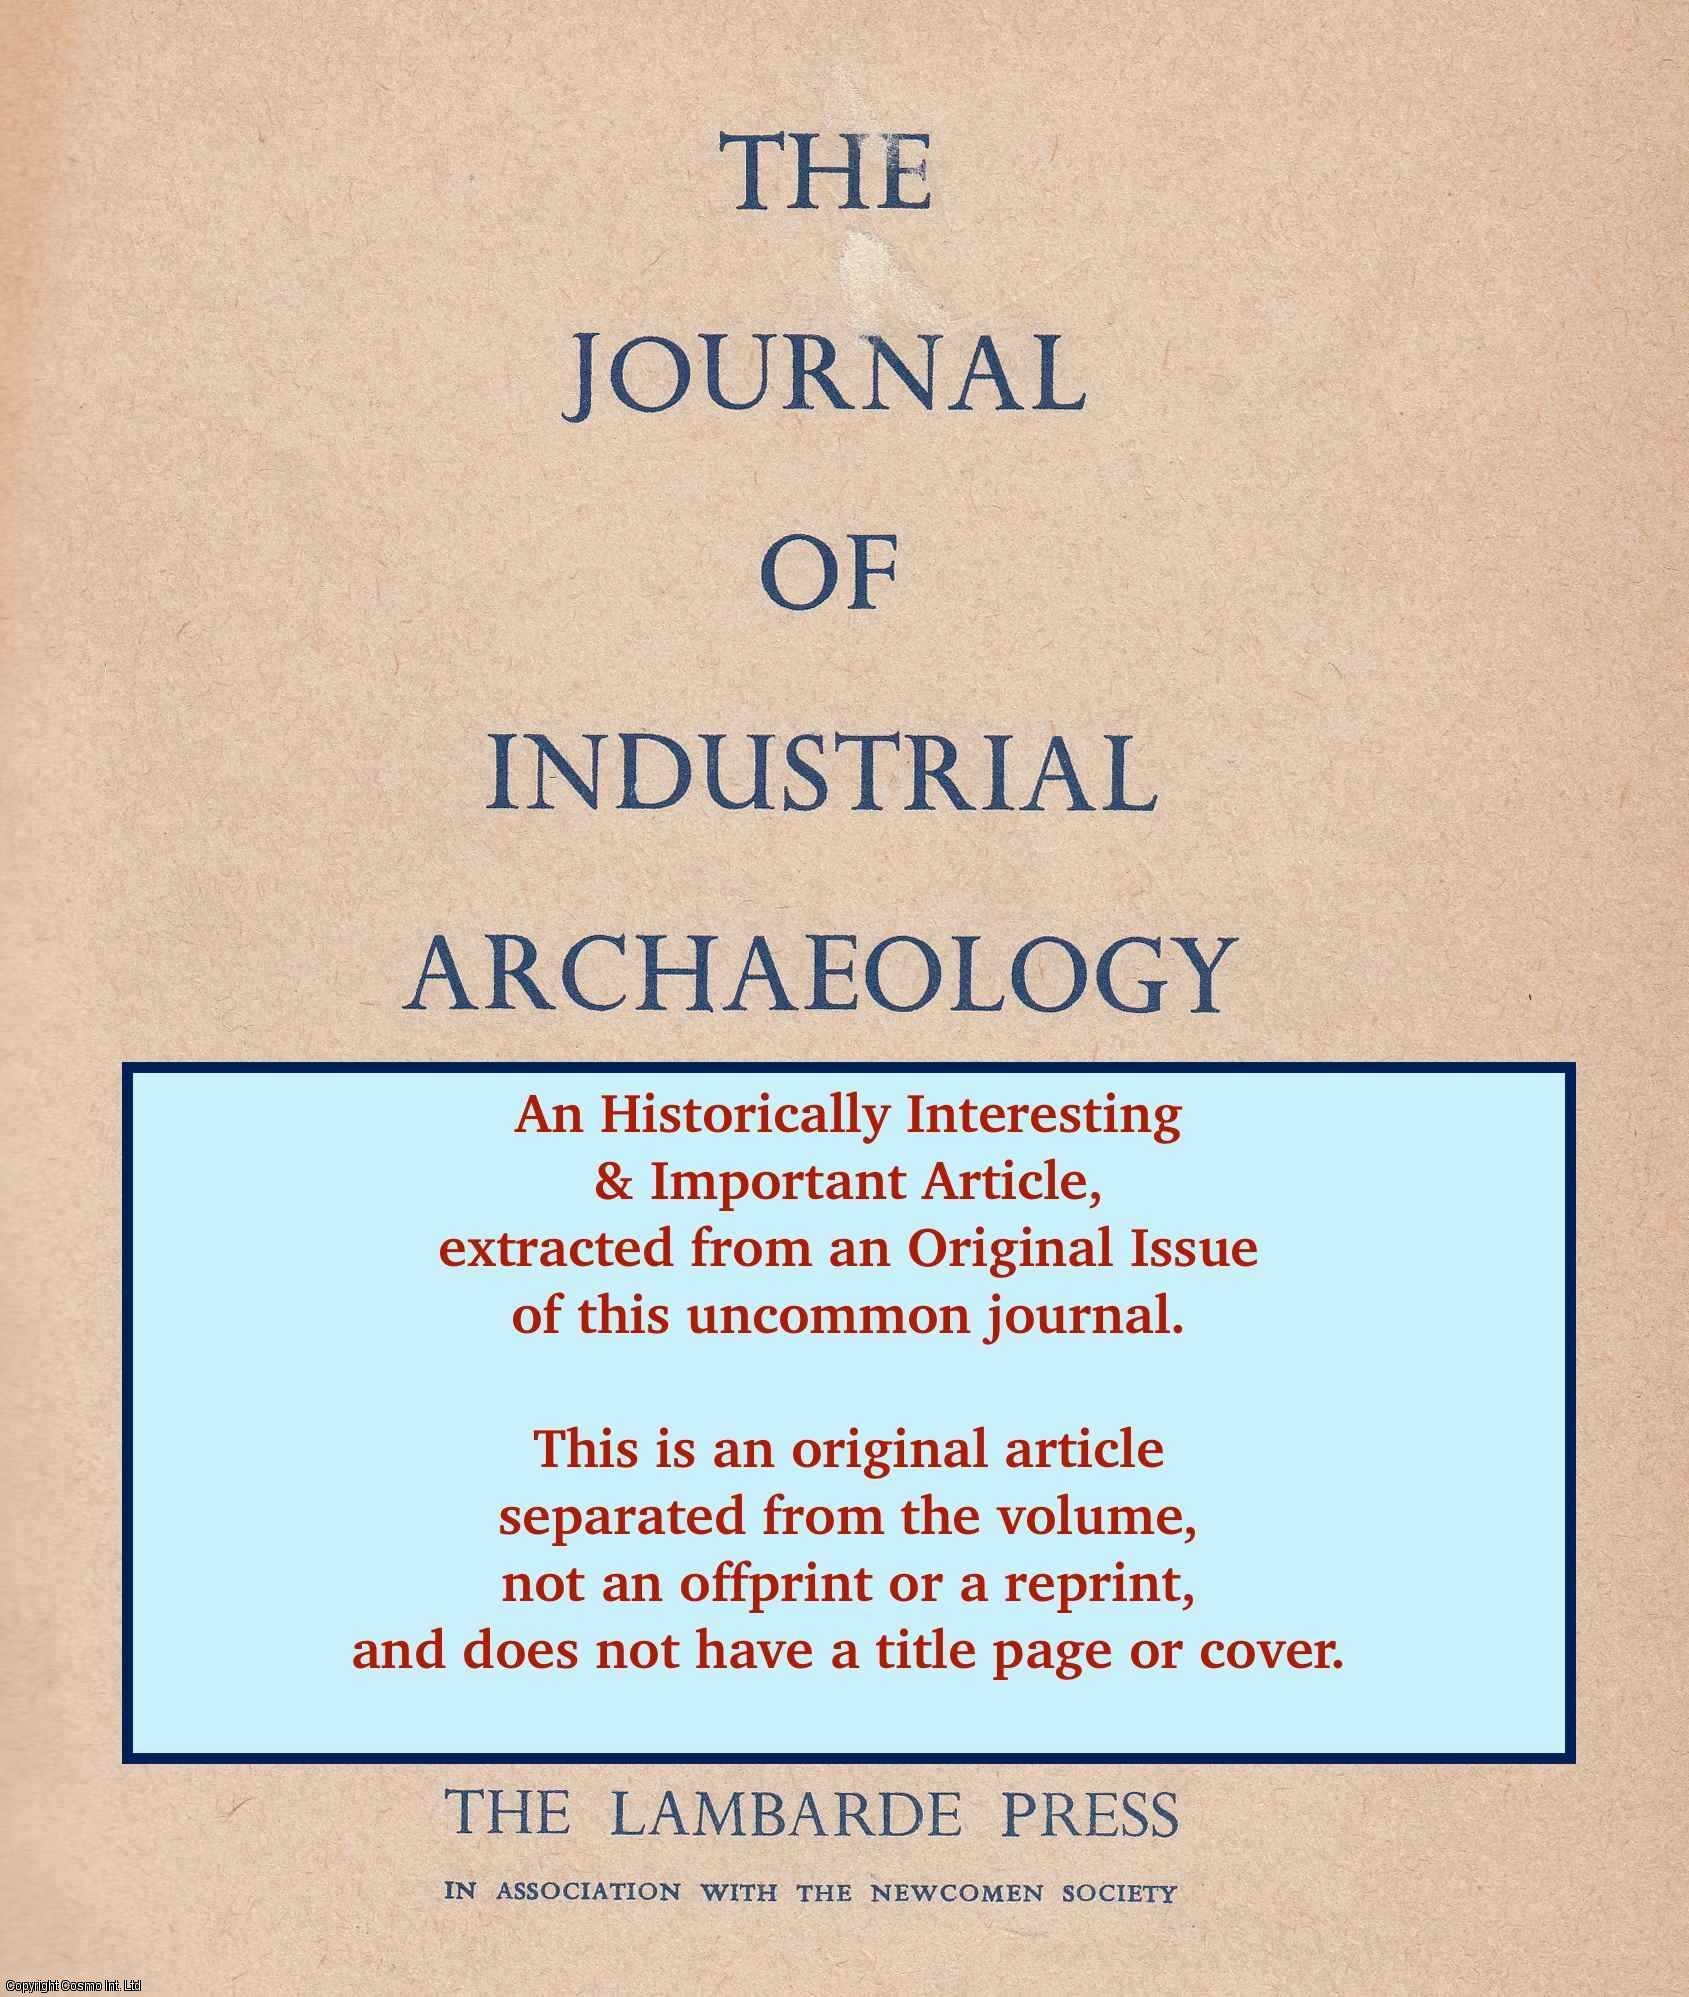 TANN, JENNIFER - A Survey of Thirsk, Yorkshire. An original article from The Journal of Industrial Archaeology, 1967.